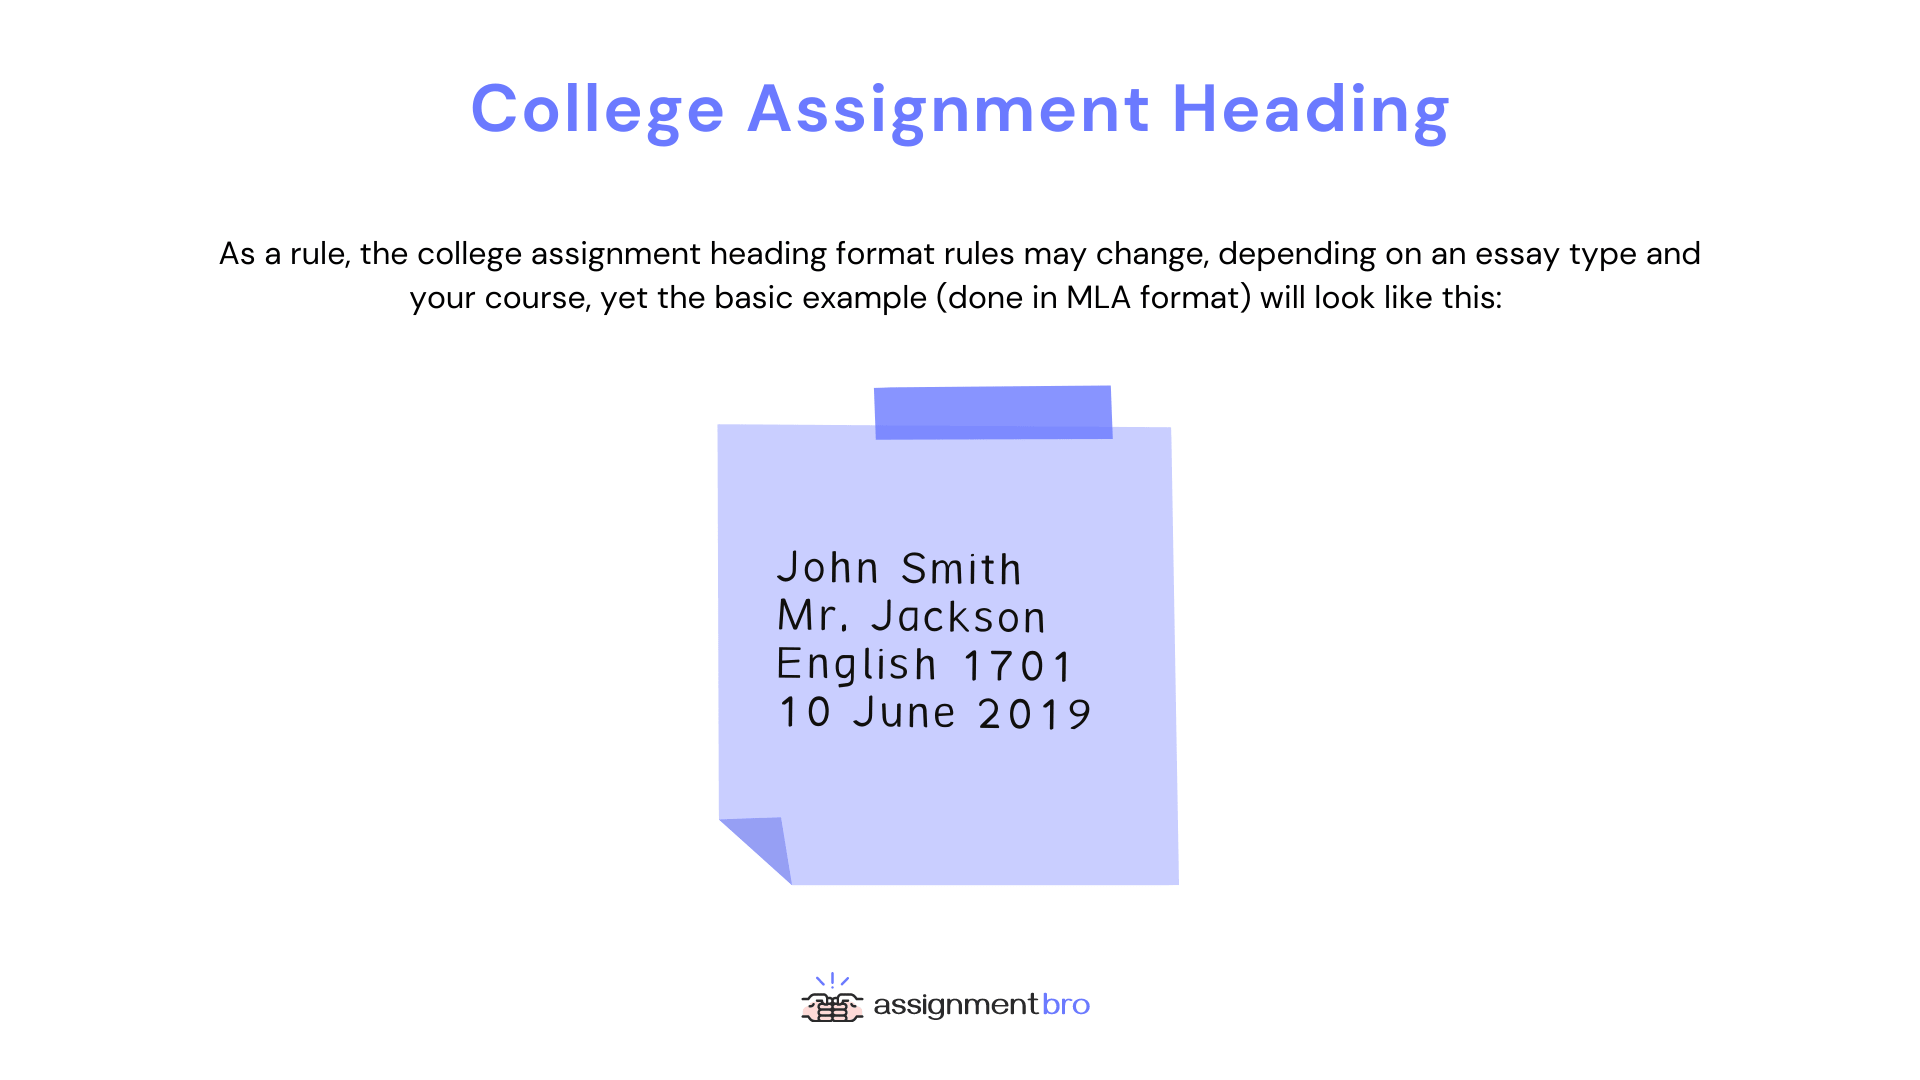 College Assignment Heading Example